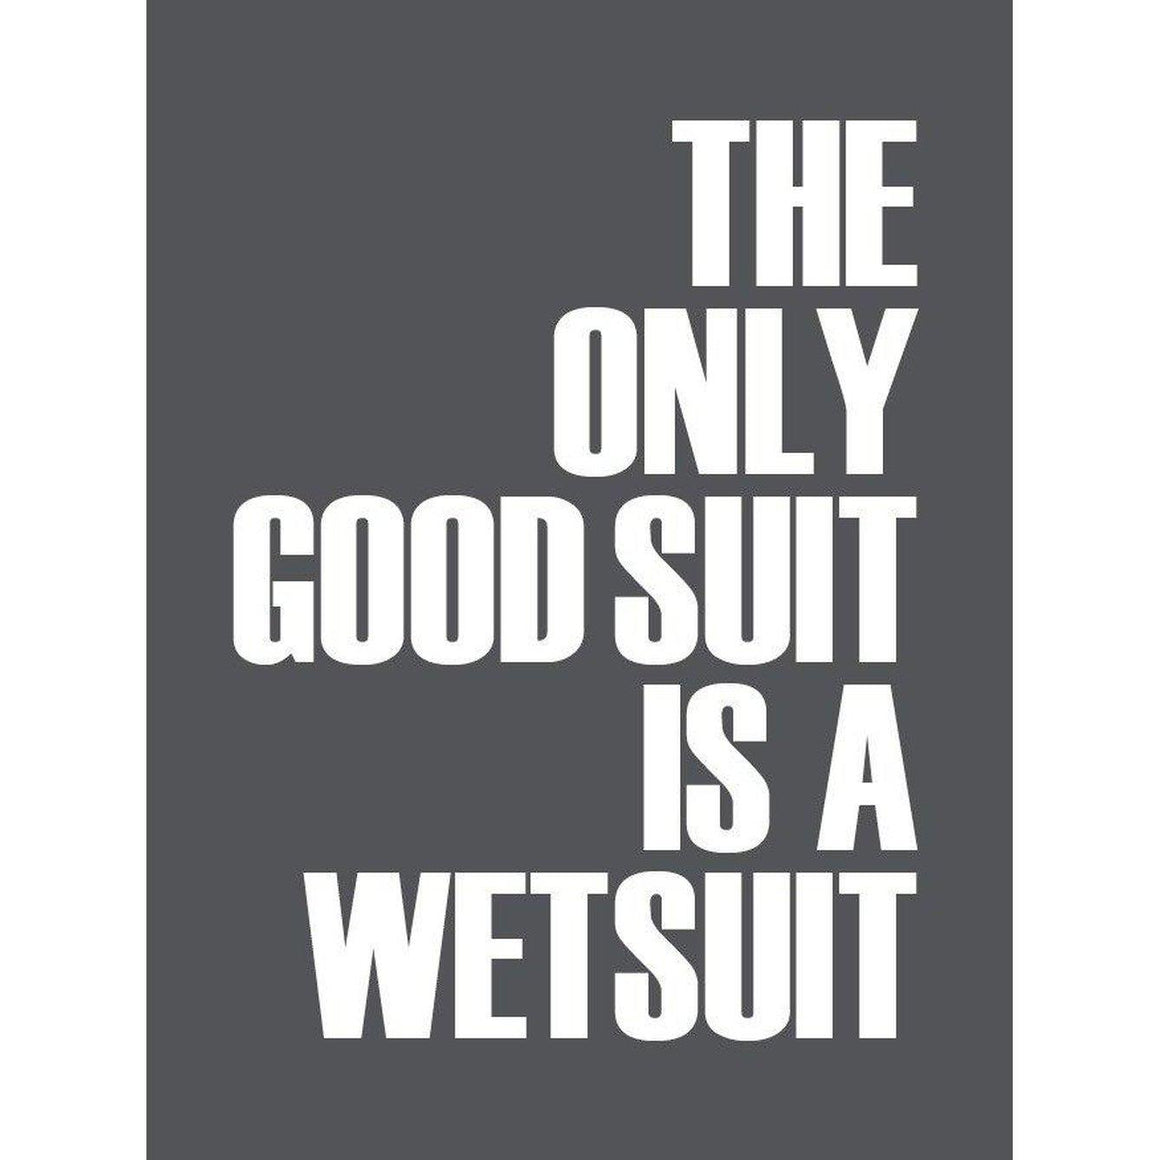 The Only Good Suit is a Wetsuit Typographic Print- Coastal Wall Art